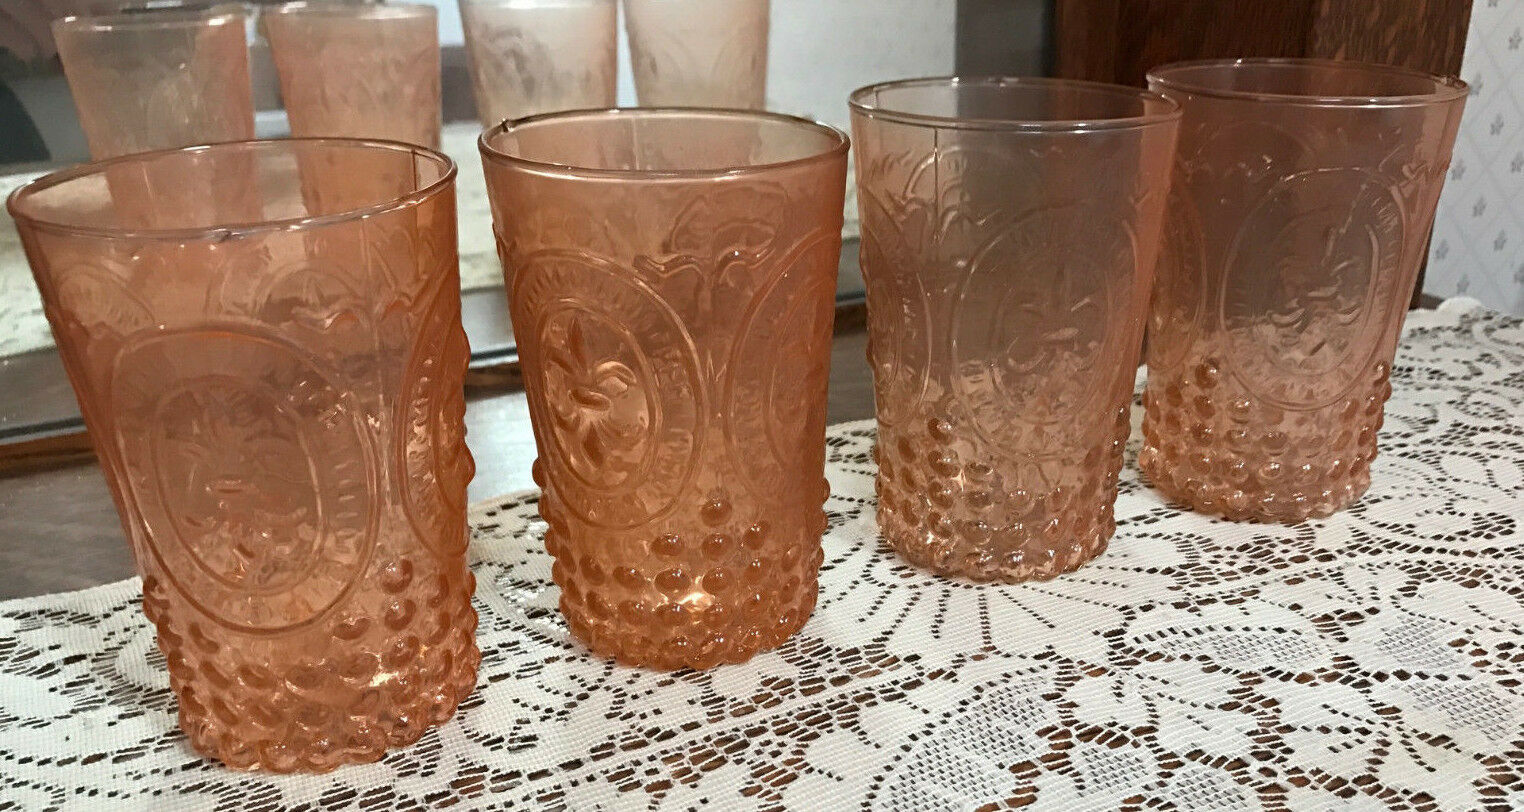 Pottery Barn Victorian Glass Tumblers, Set Of 4 - Coral - New